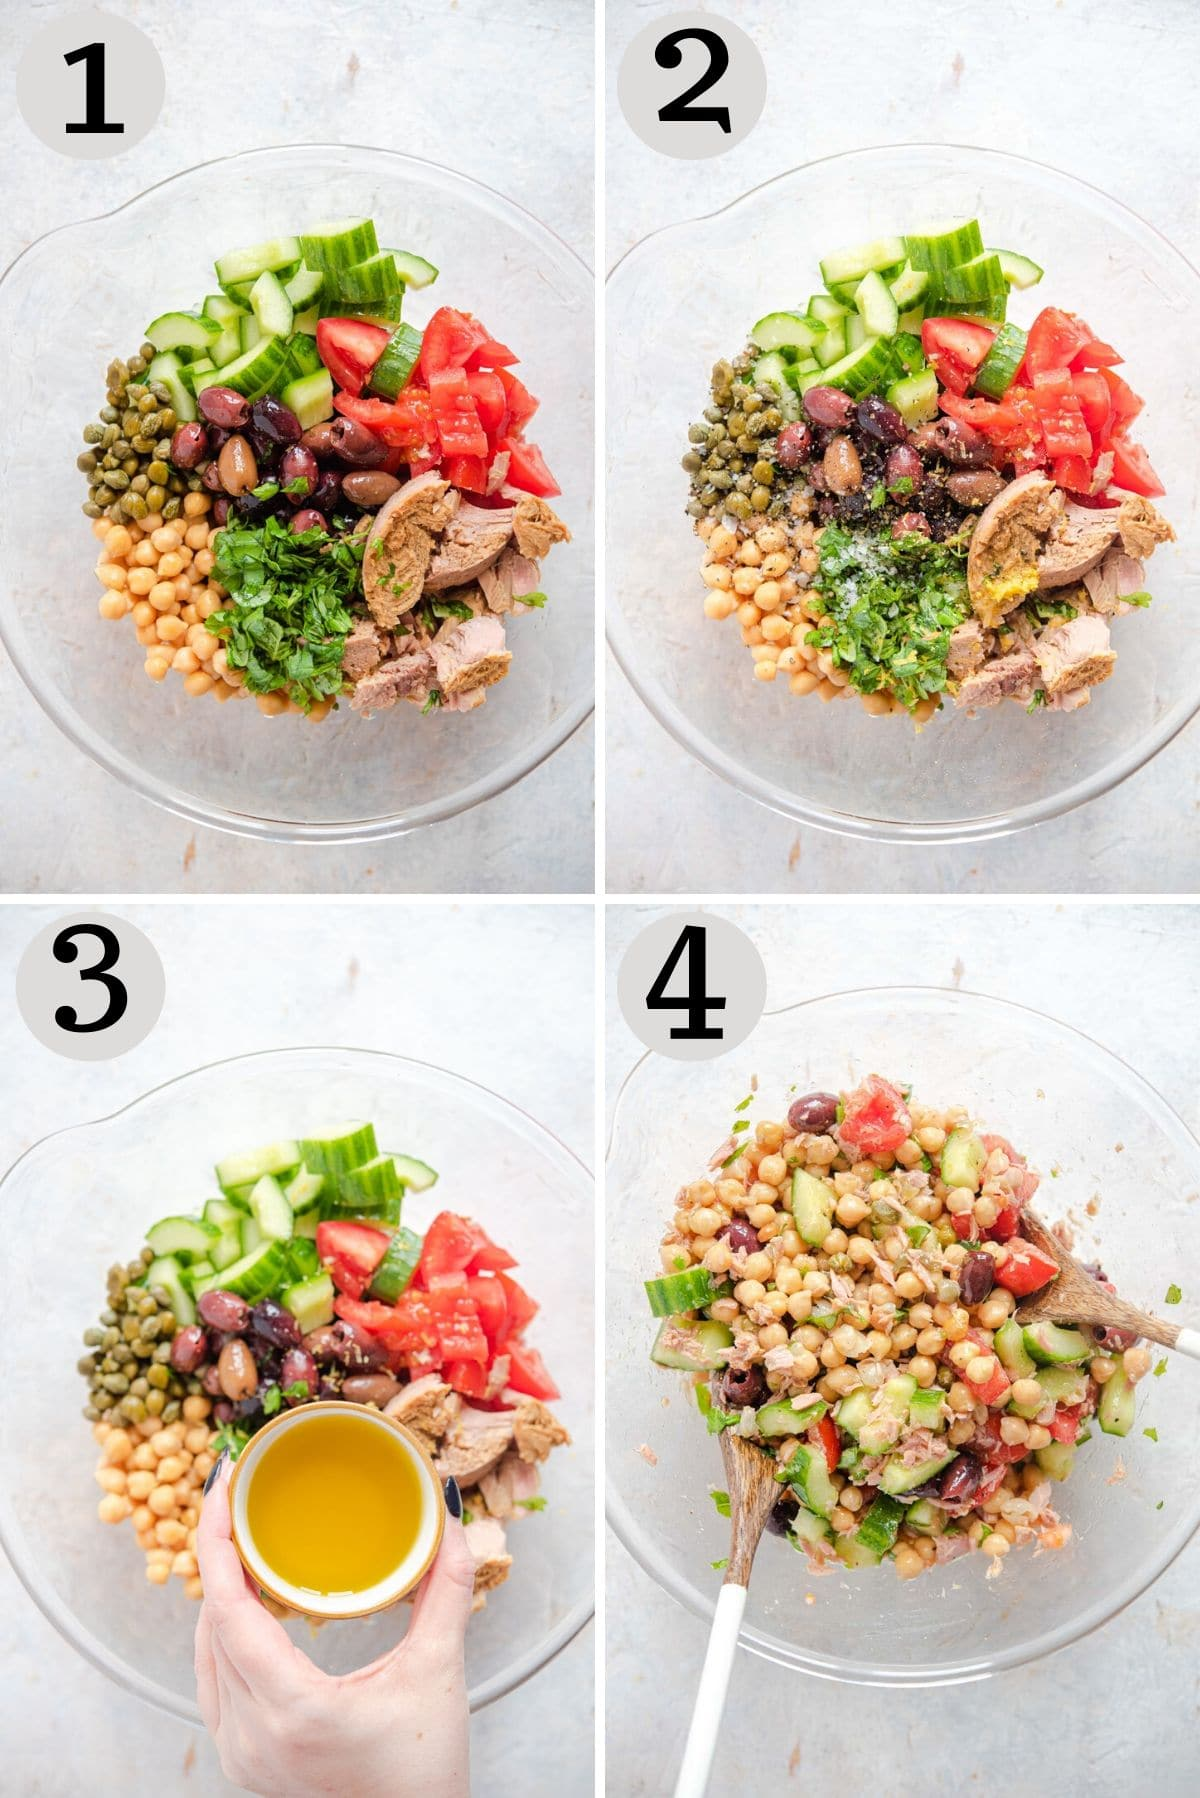 Step by step photos for making a chickpea tuna salad